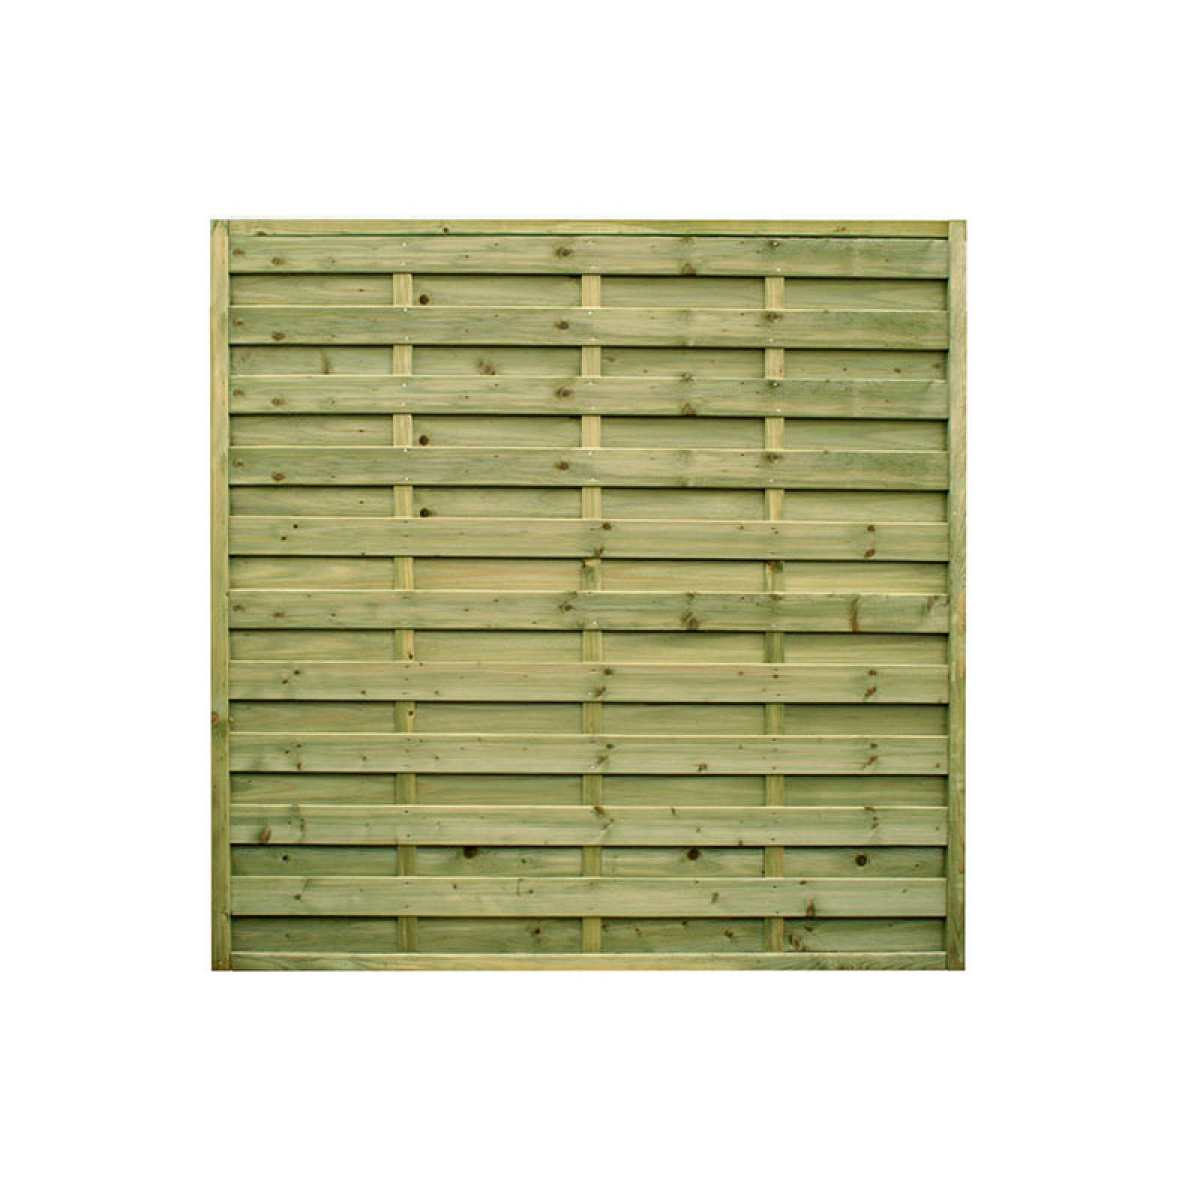 milano 1800x1800mm continental fence Image by Websters Timber